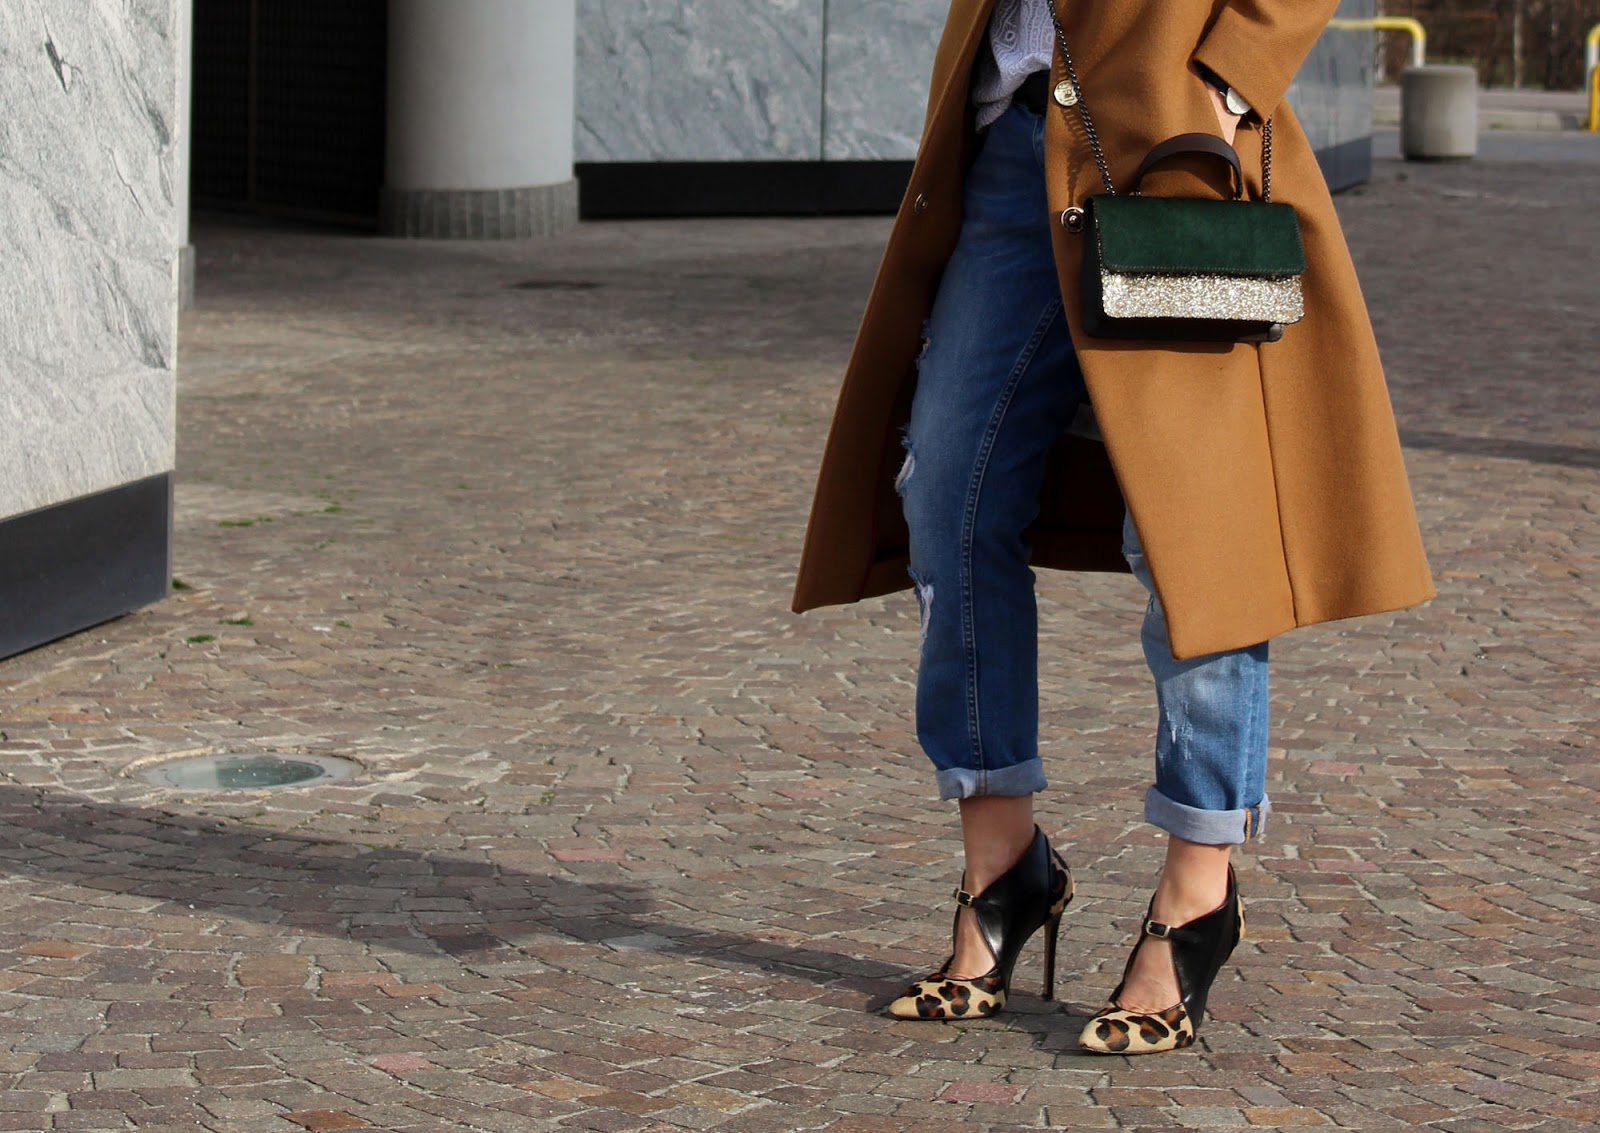 Eniwhere Fashion - Camel coat and animalier shoes